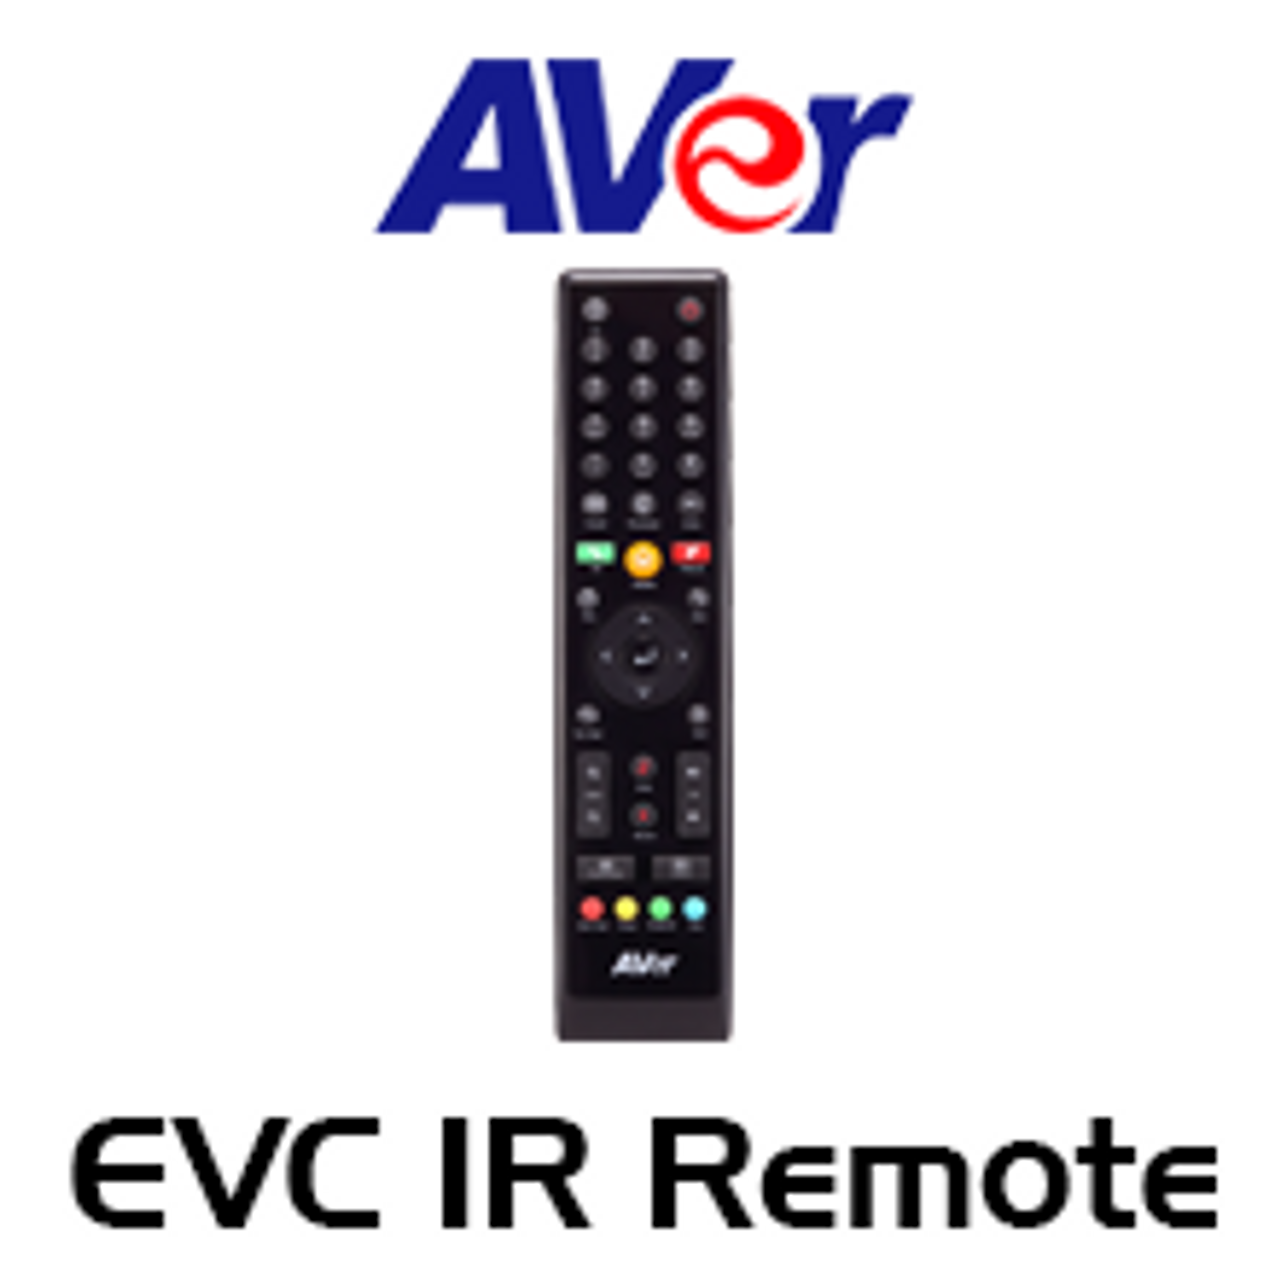 Aver IR Remote Control For EVC Series Conferencing System